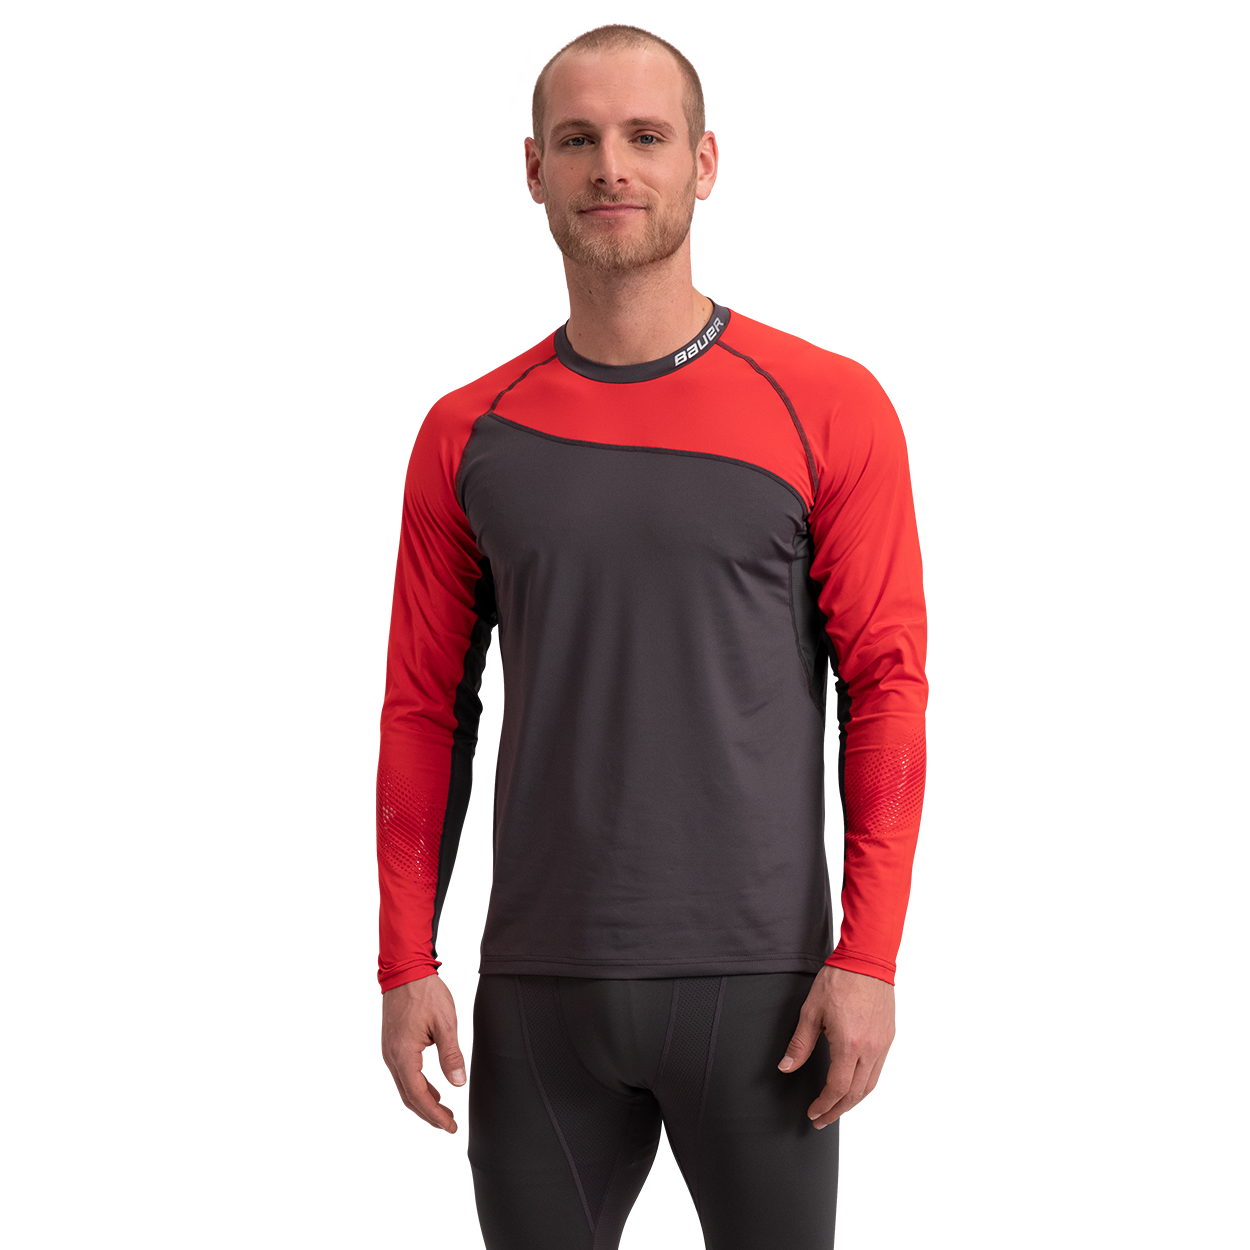 Pro Long Sleeve Base Layer Top,Красный,Размер M